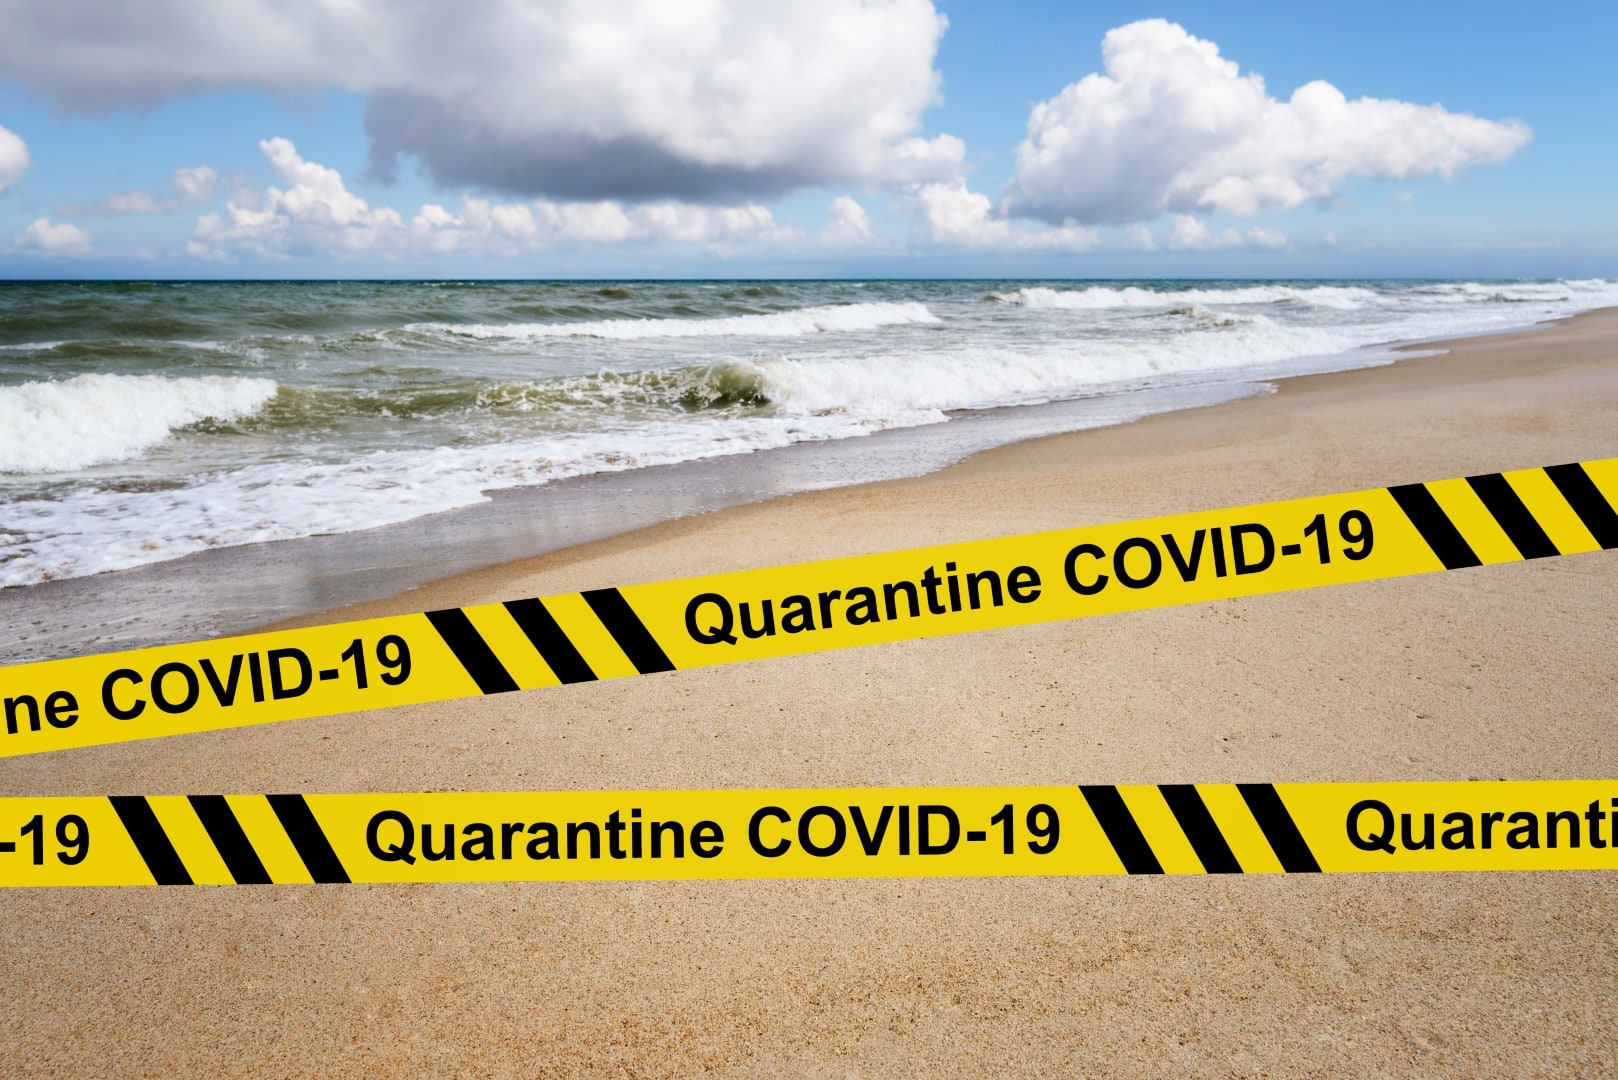 coronavirus-beach-2-Large.jpeg